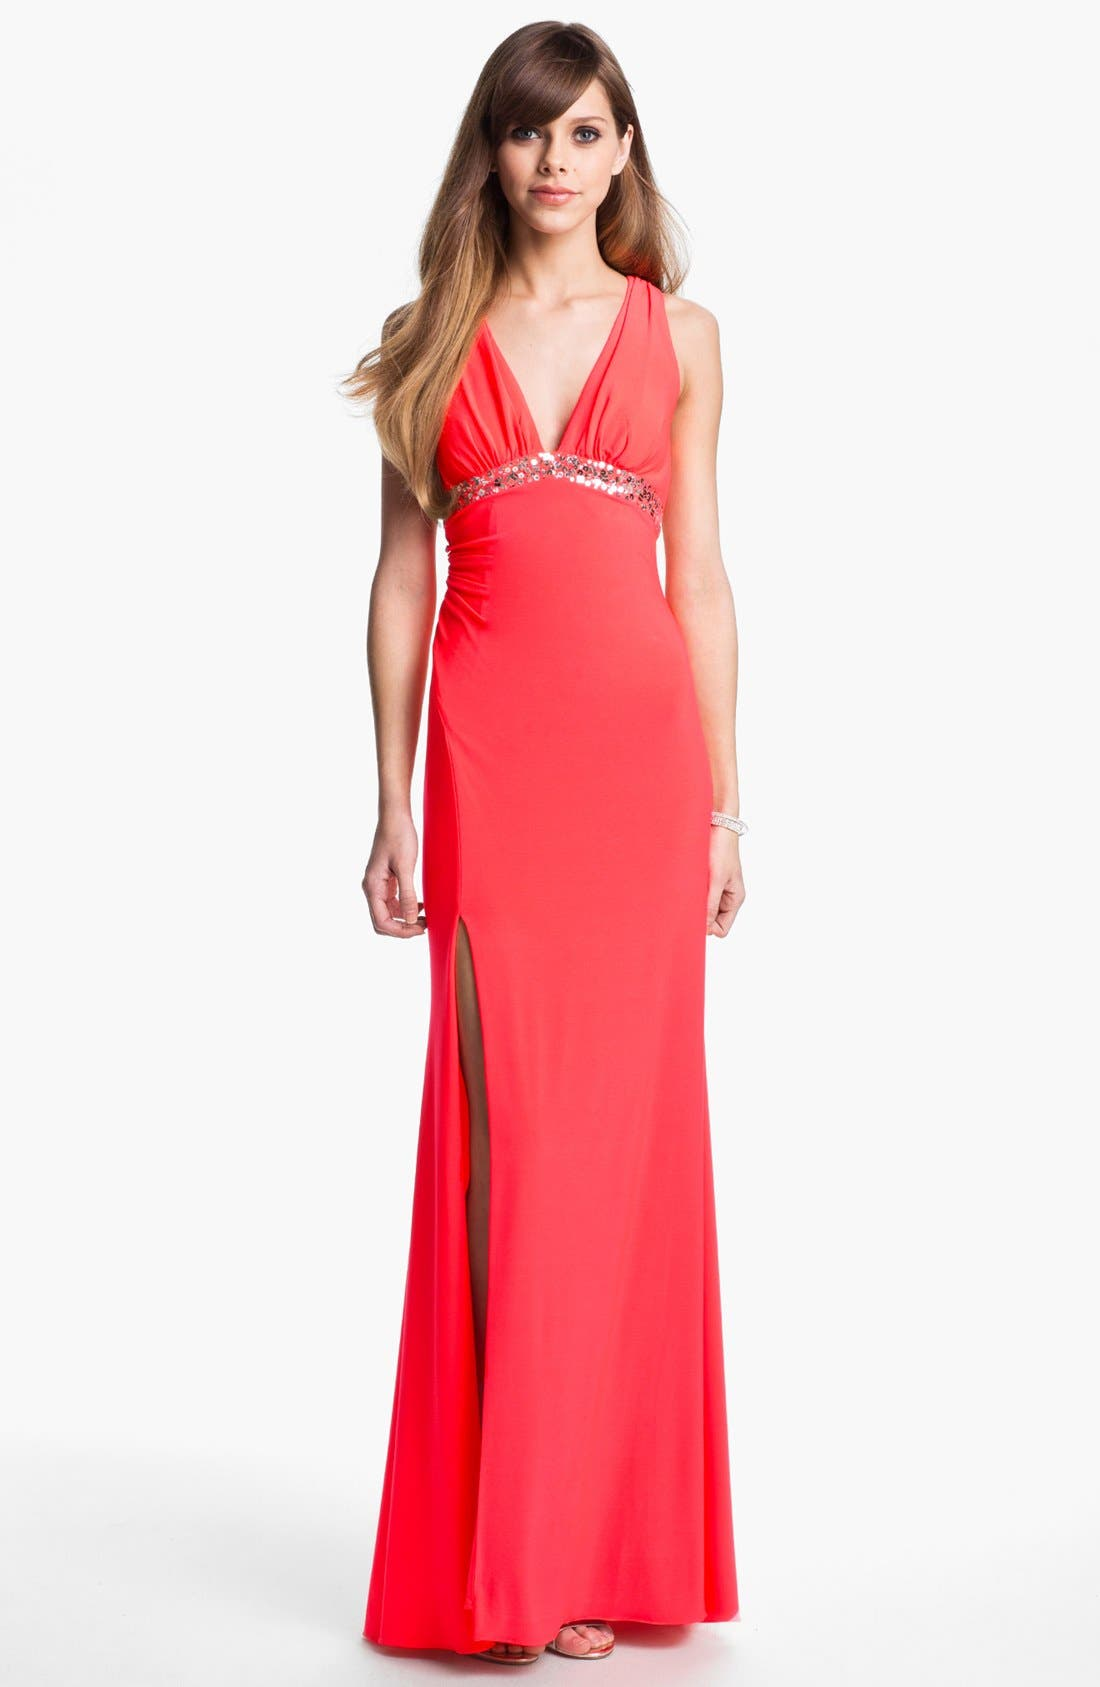 Alternate Image 1 Selected - Test 1.26.16 - Hailey Logan Embellished Cutout Gown (Juniors) (Online Only)test. Test PICS2.0